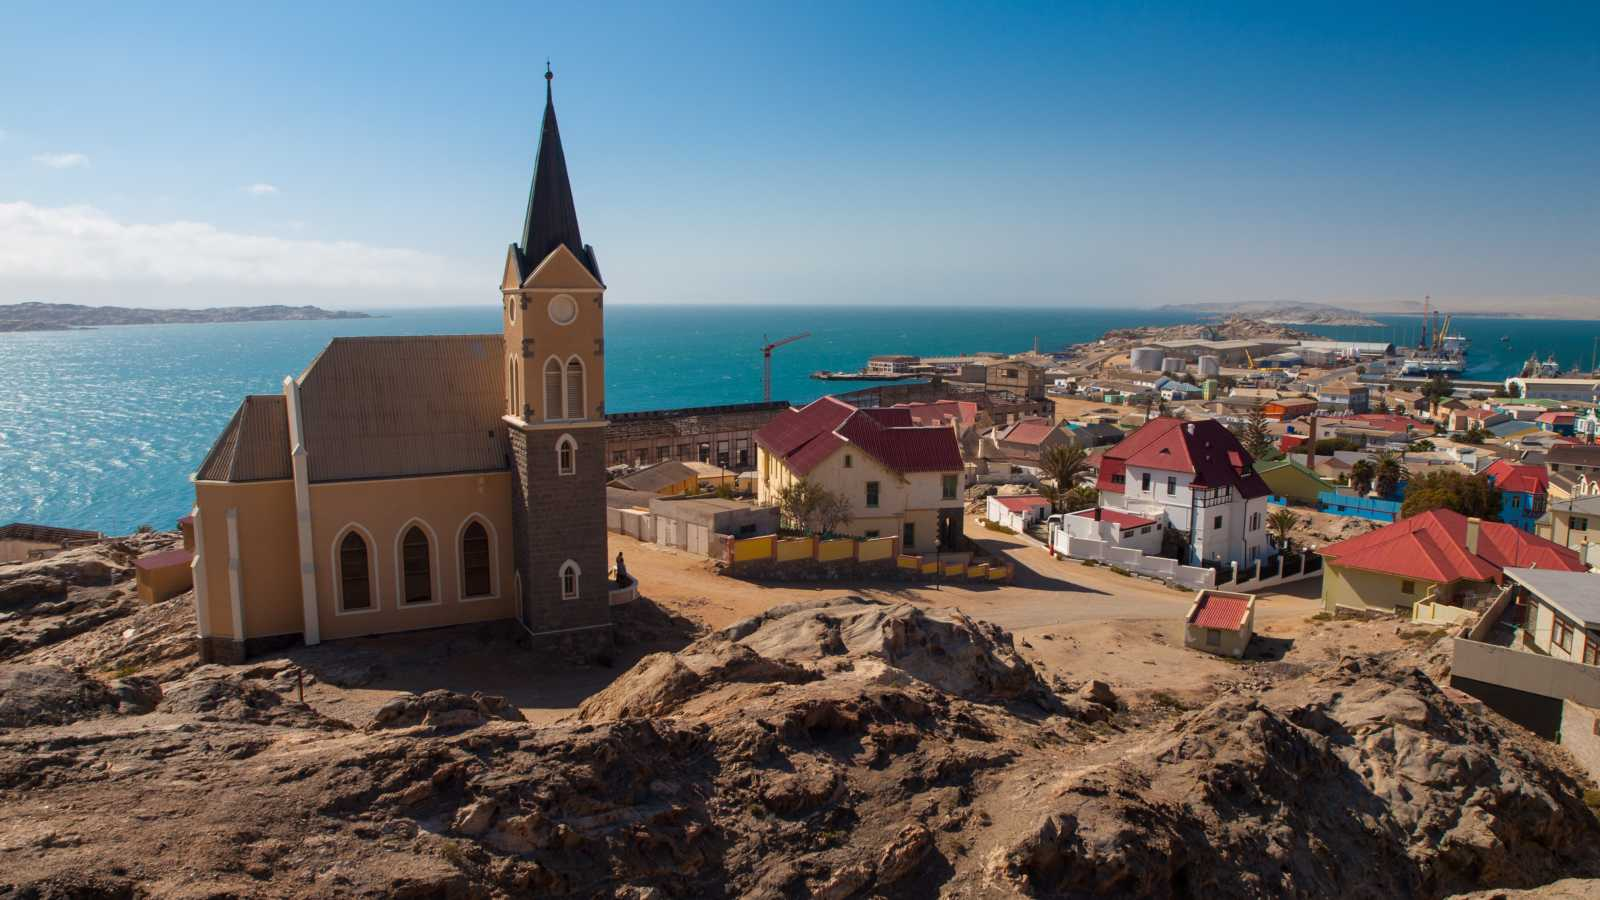 Views of a church in Lüderitz, Namibia